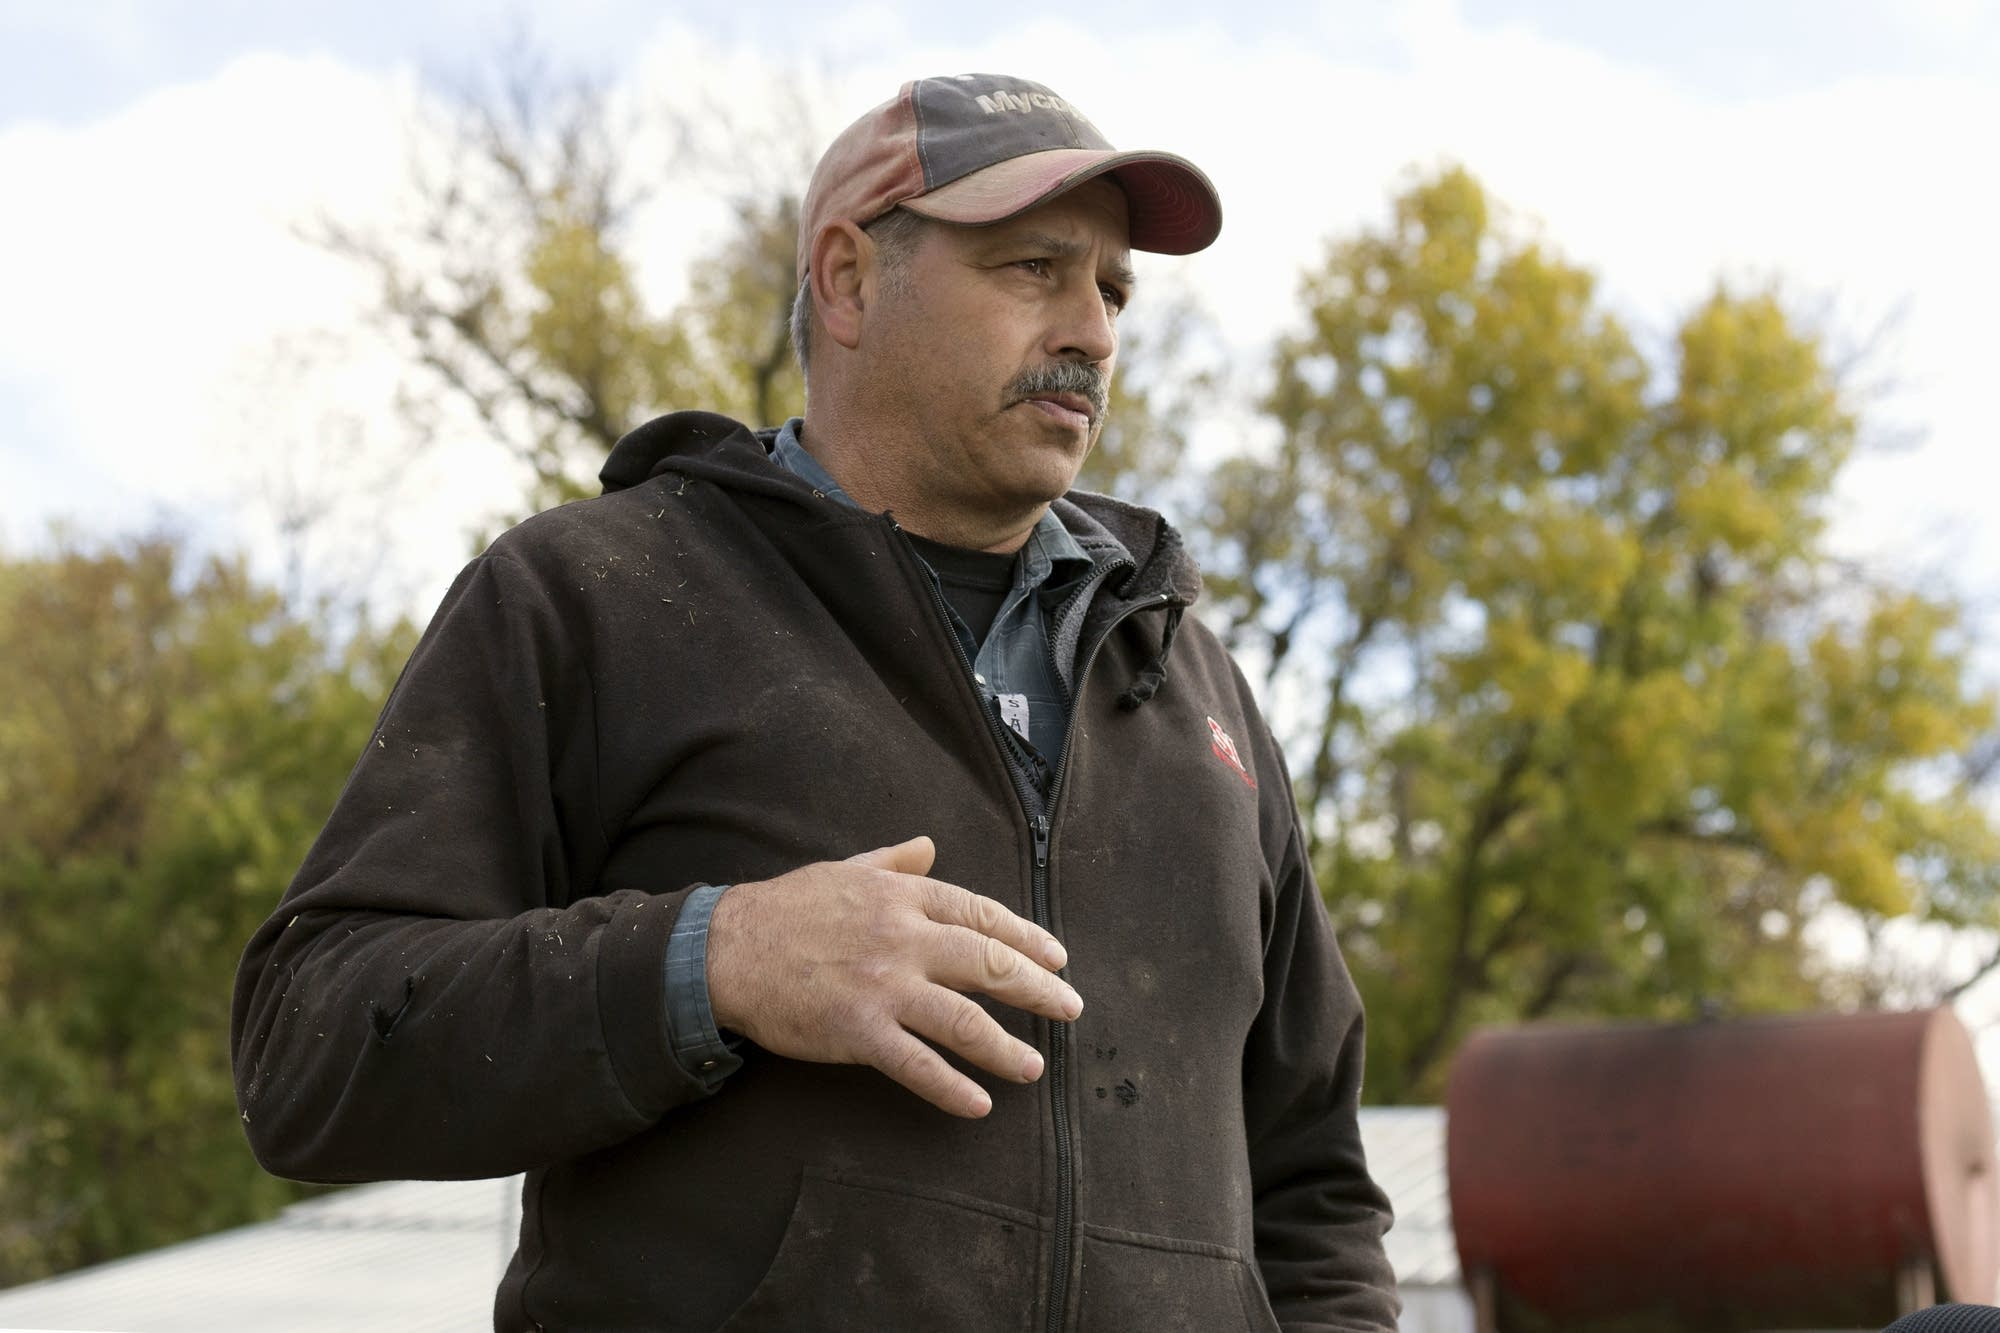 Weather affected the harvest of farmer John Schafer's crops this season.